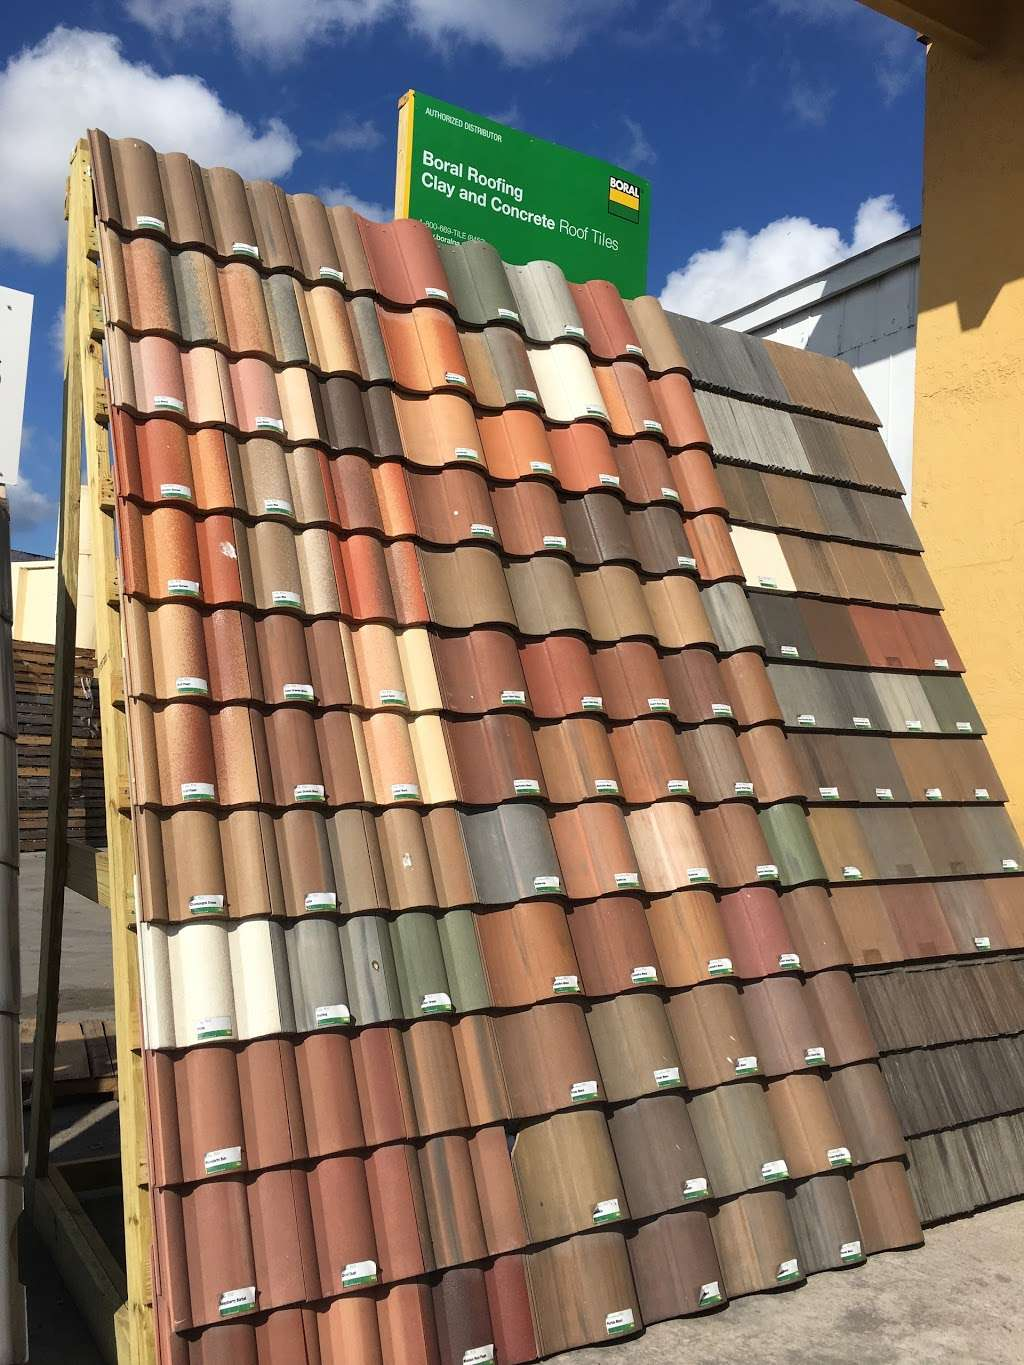 Mediterranean Roof Tiles - store    Photo 4 of 10   Address: 9060 NW 97th Terrace, Medley, FL 33178, USA   Phone: (305) 887-7055